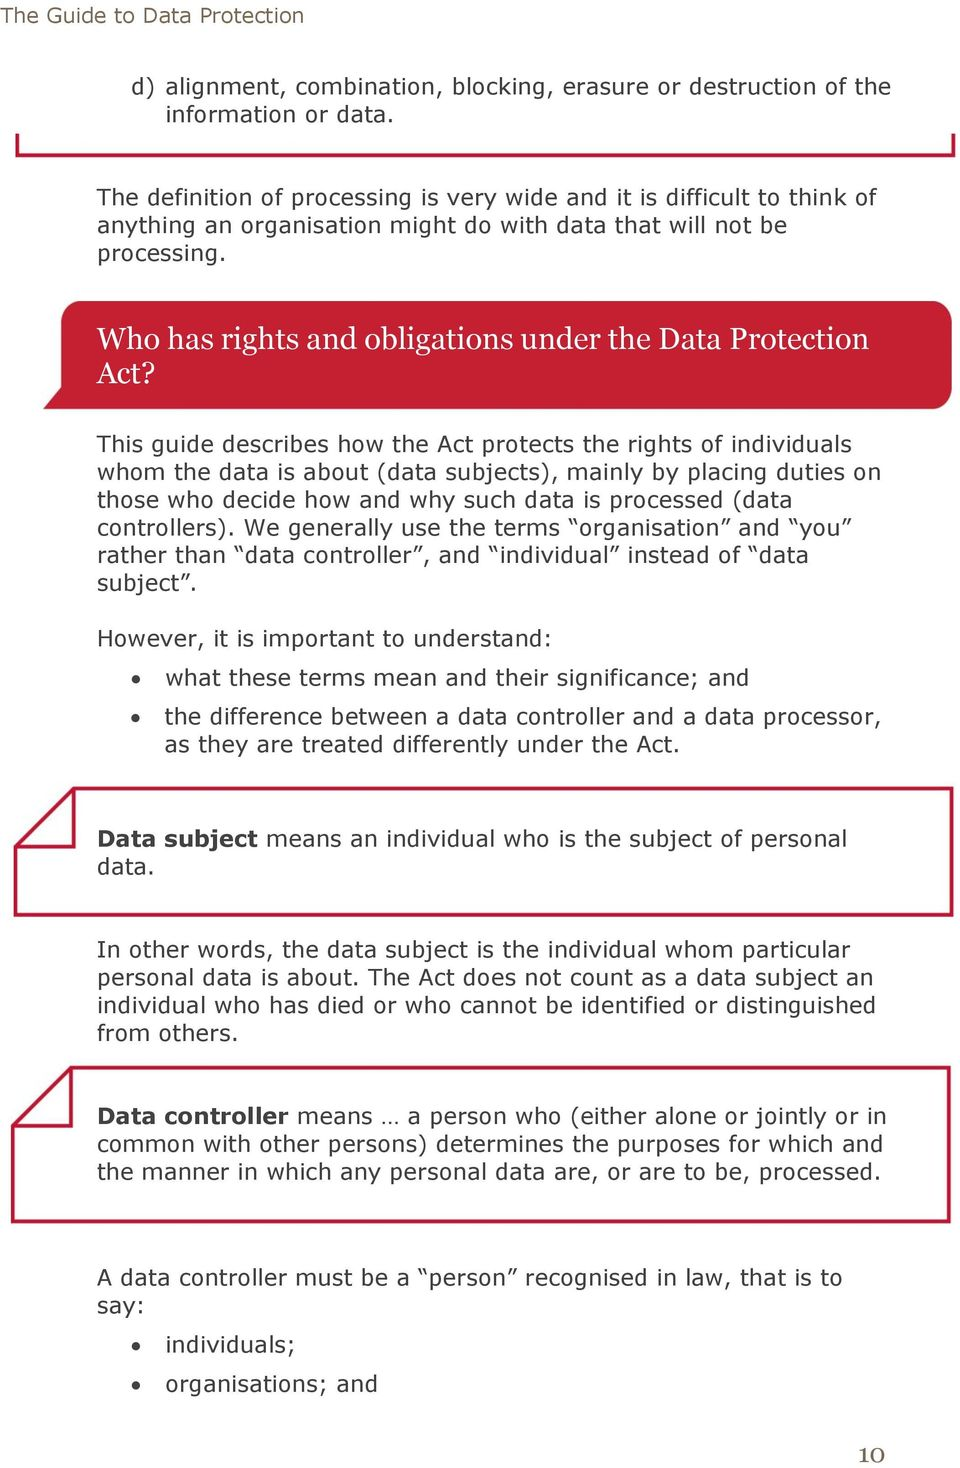 Who has rights and obligations under the Data Protection Act?